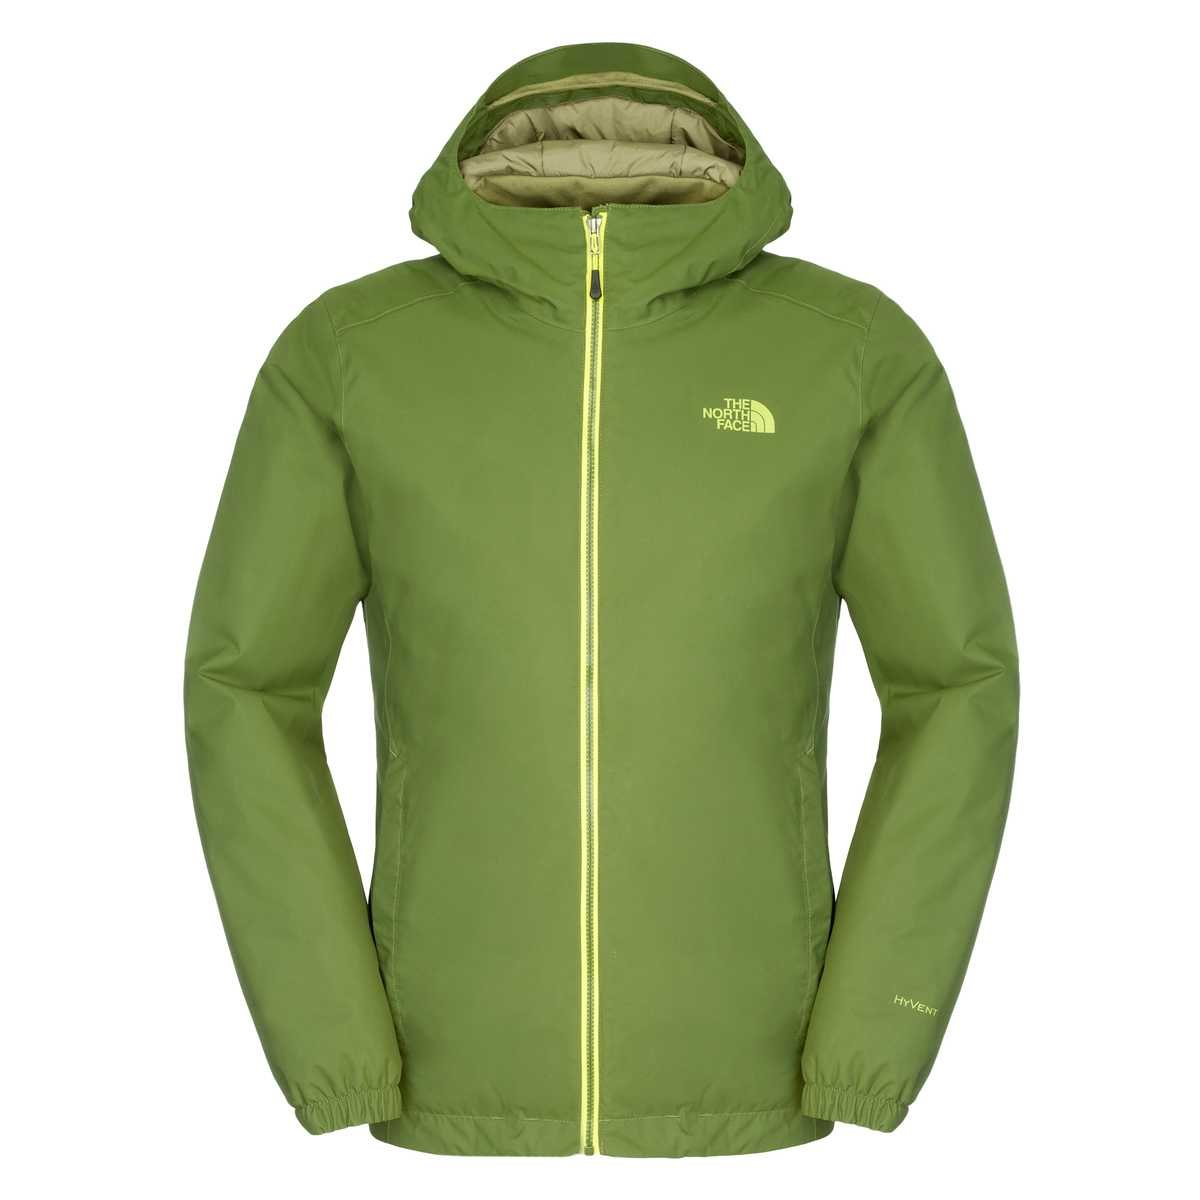 The North Face Hardshelljacke Quest Insulated, Scallion Green, Extra-Small: Amazon.es: Deportes y aire libre